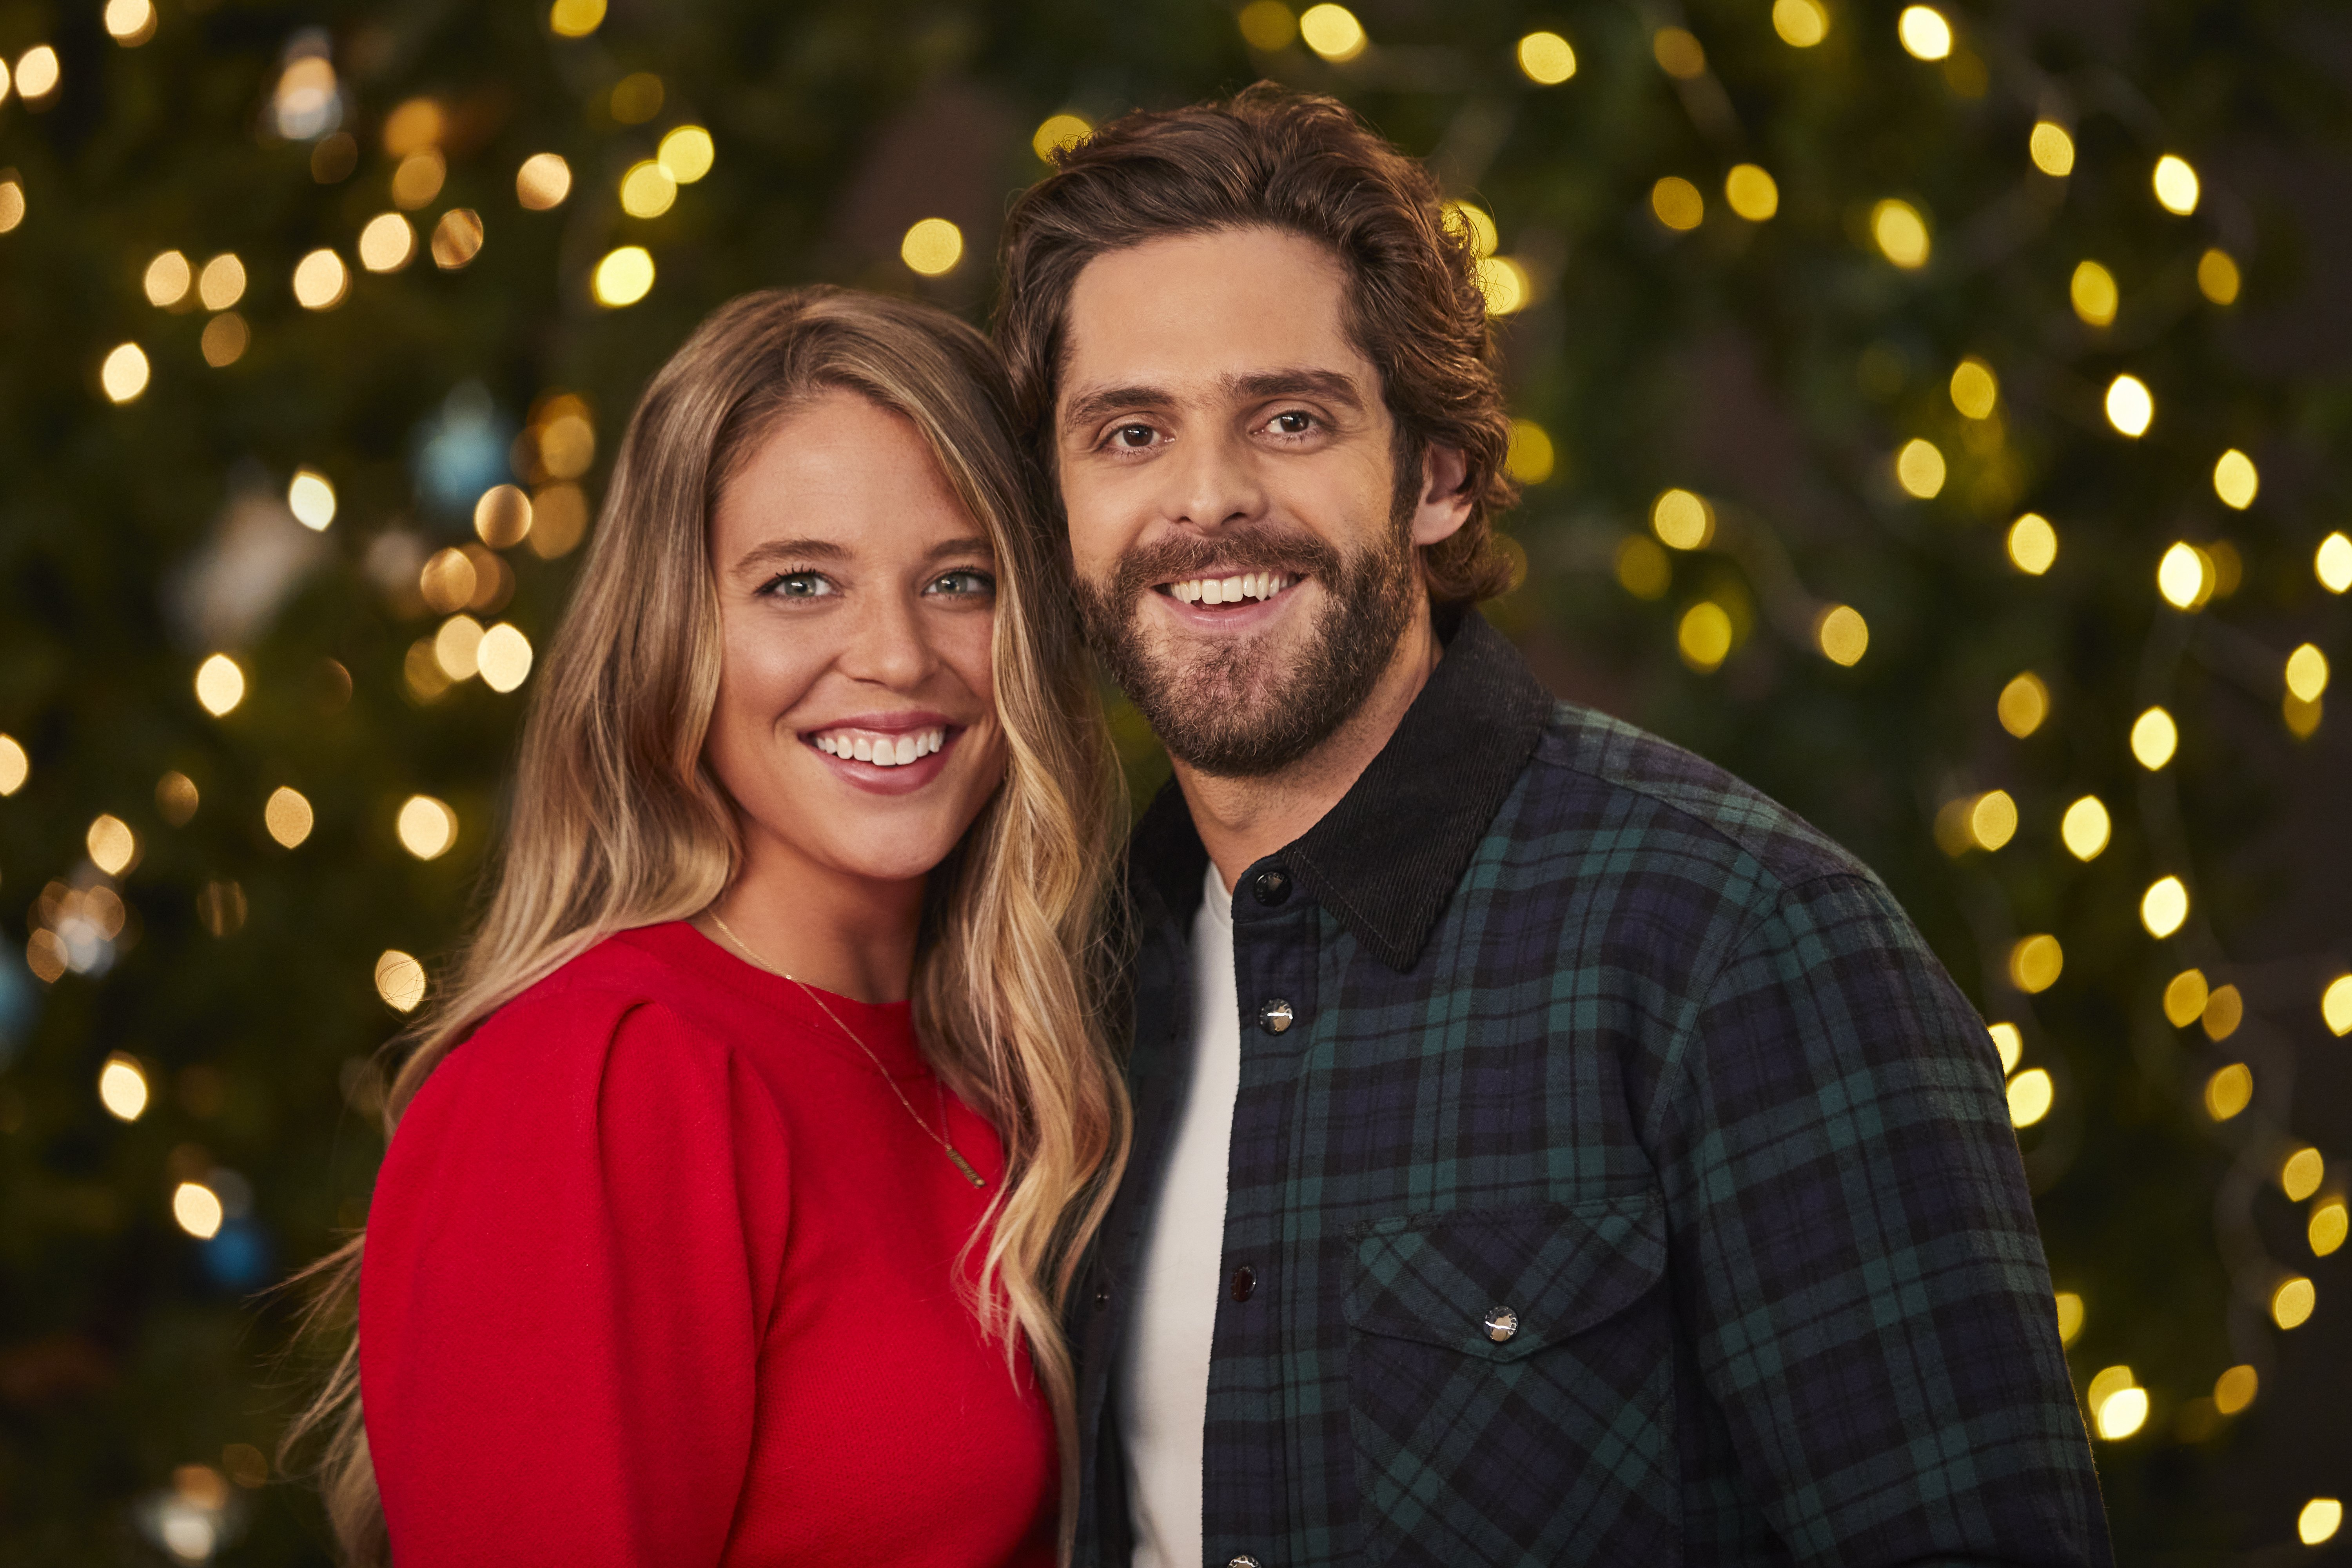 Country singer Thomas Rhett Akins and his wife Lauren Akins | Source: Getty Images